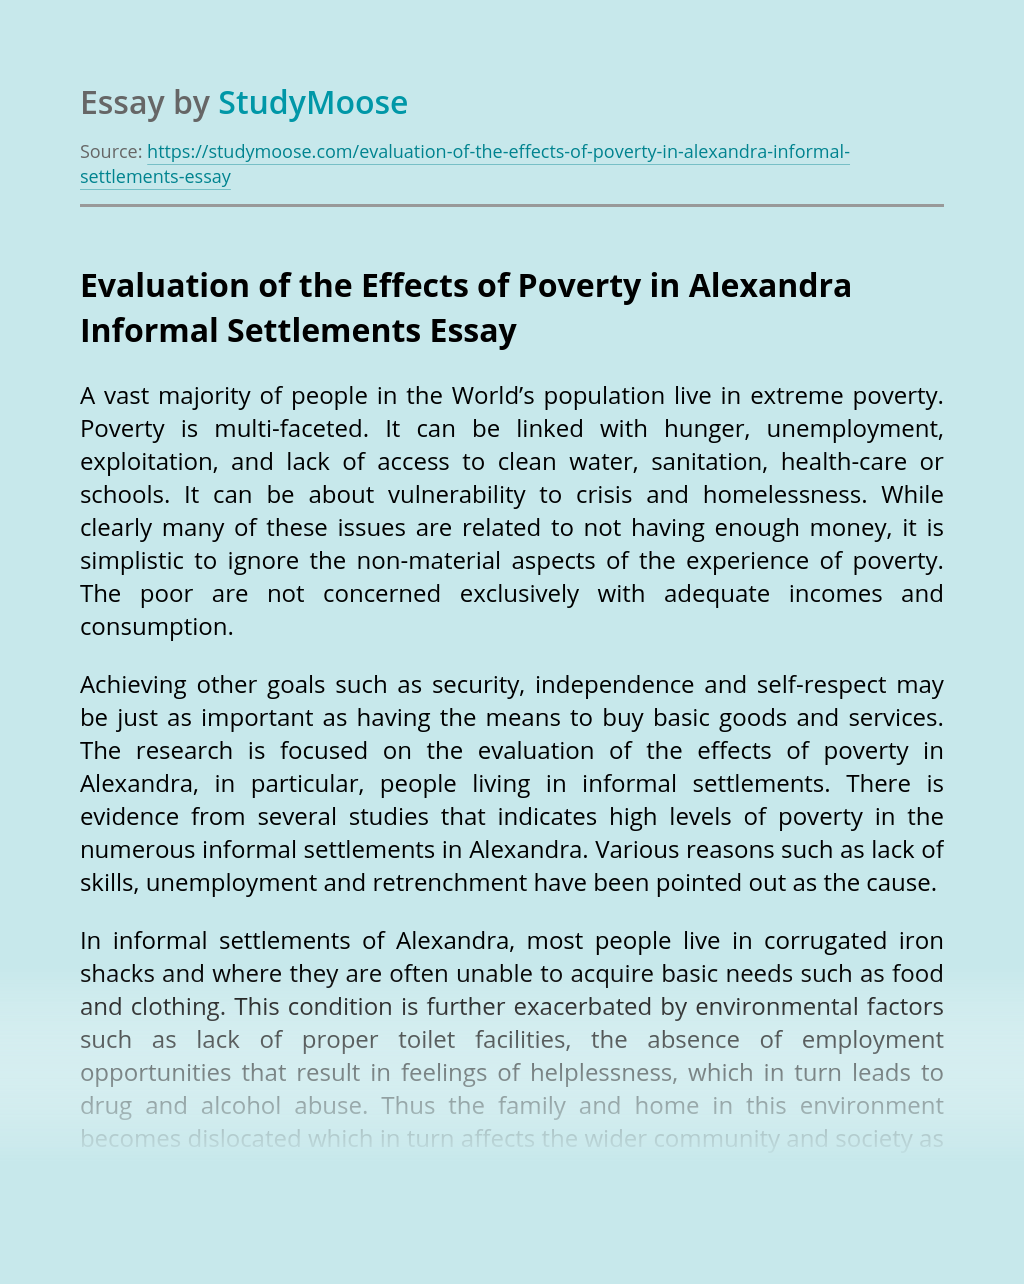 Evaluation of the Effects of Poverty in Alexandra Informal Settlements